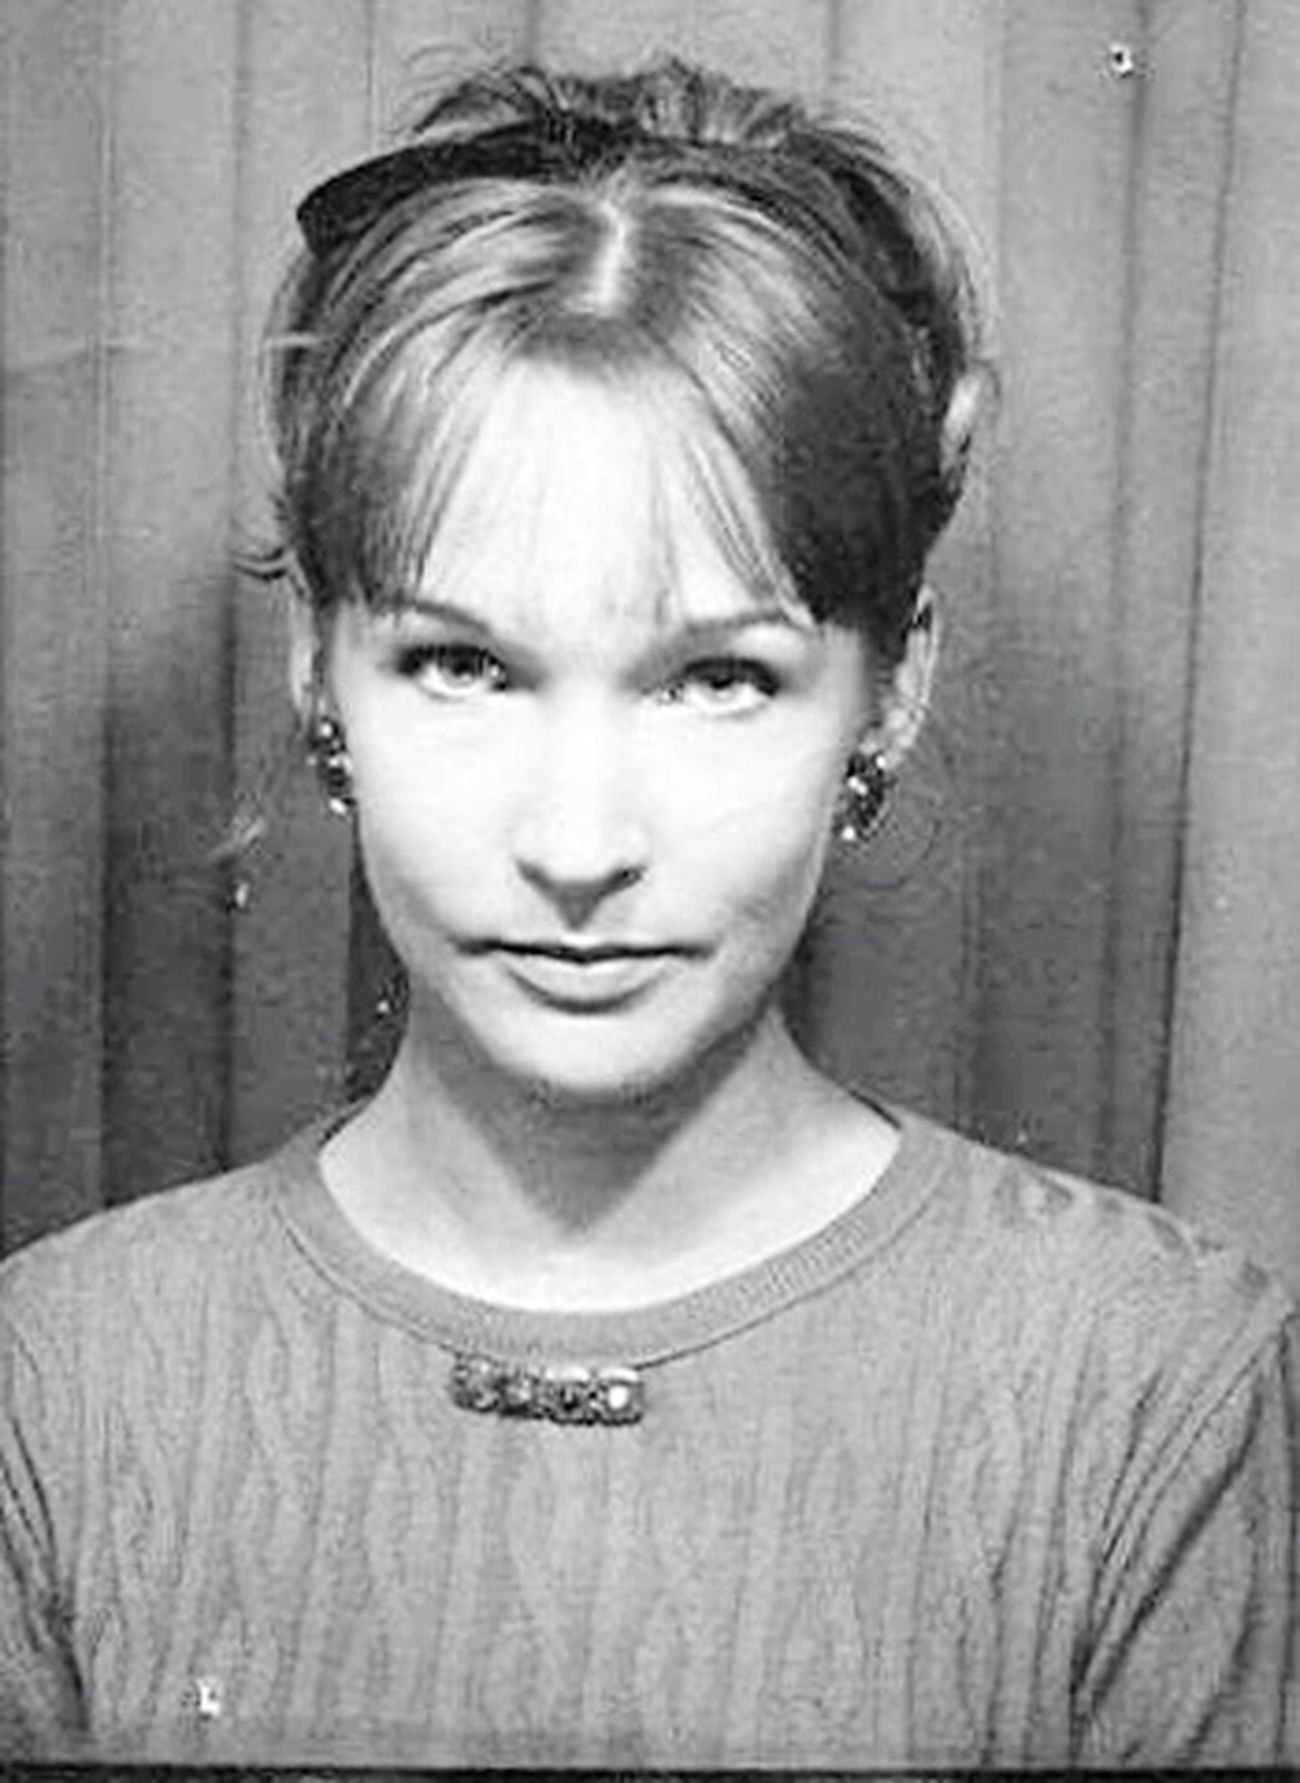 Mummy Russian Girl Russian Beauty Oldpicture Beauty Sixties B&W Portrait Black And White Portrait